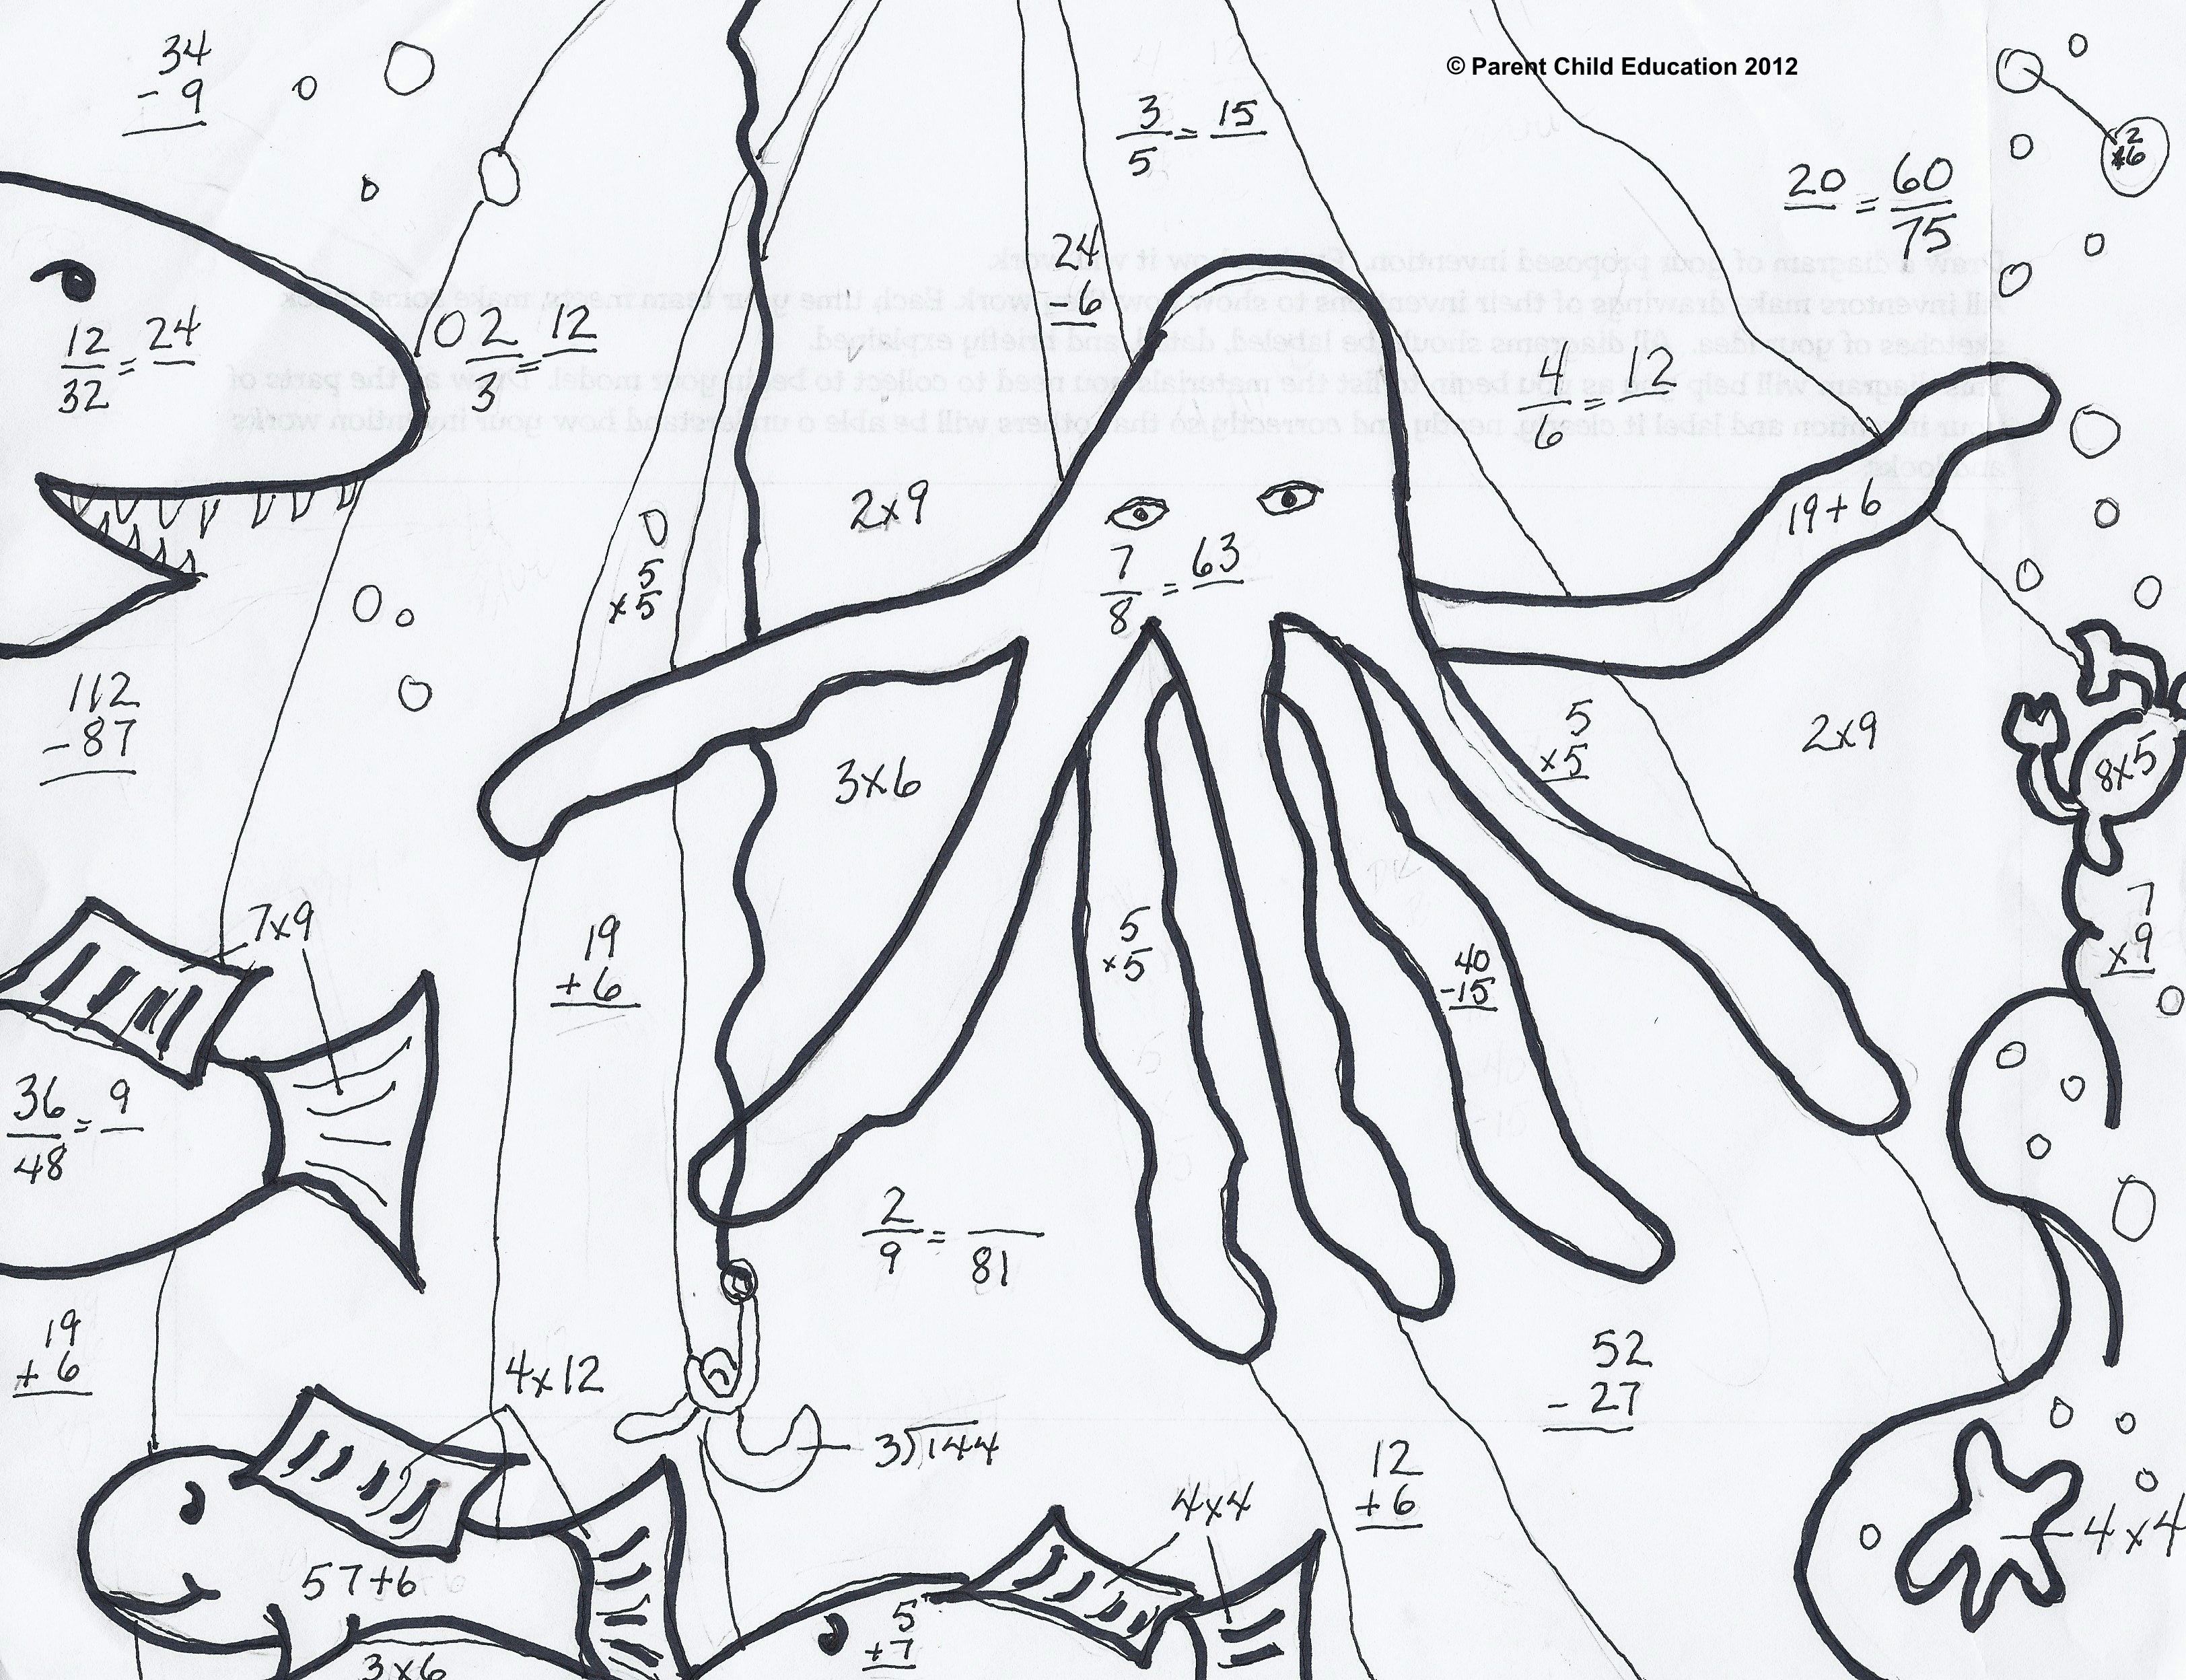 5th grade thanksgiving coloring pages photo - 1